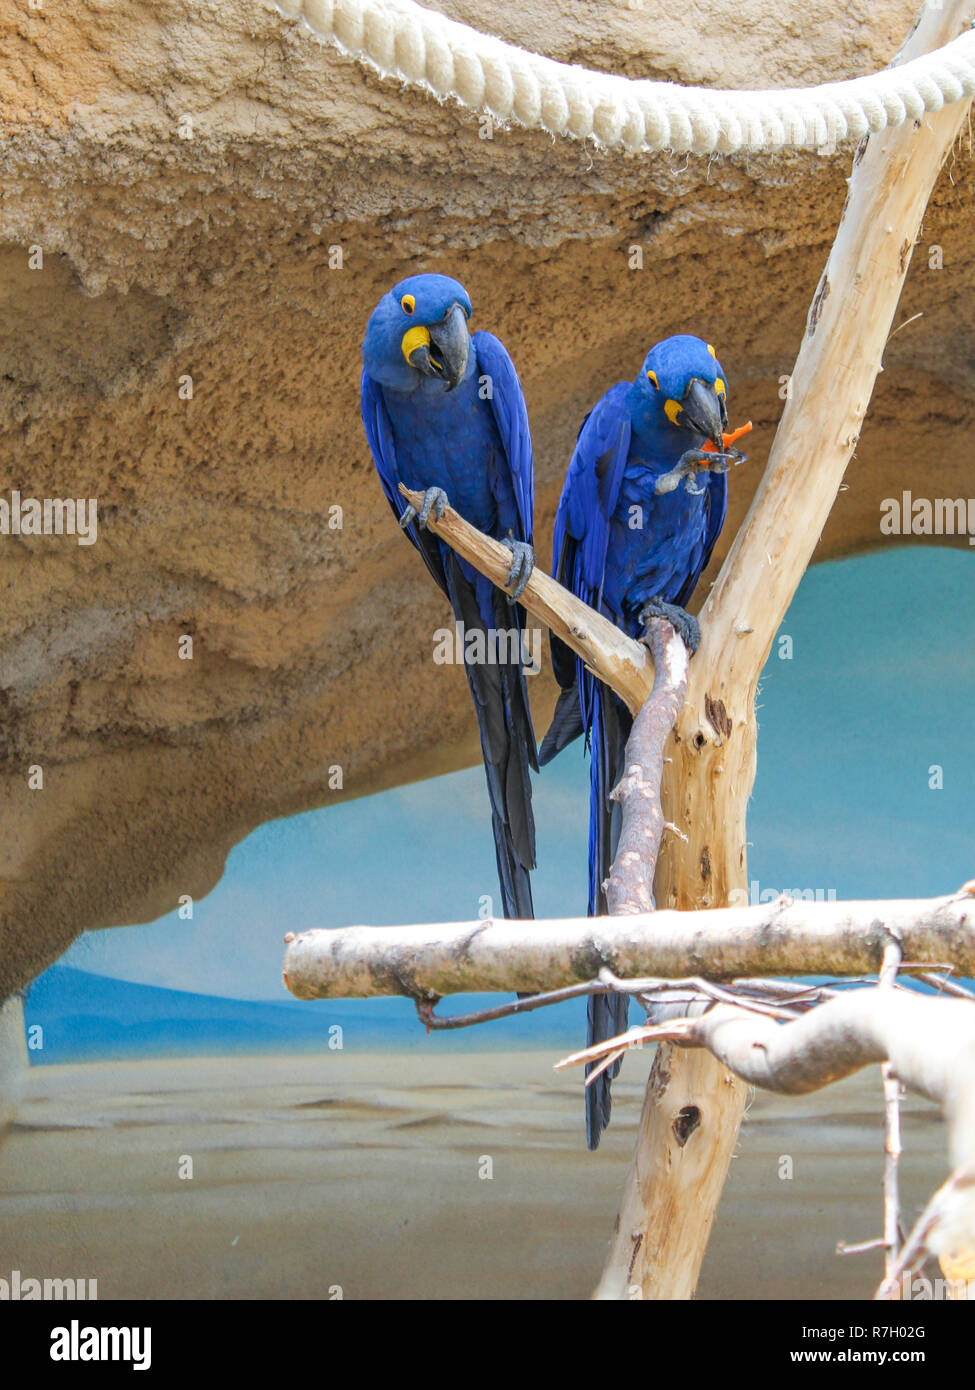 Two hyacinth macaws sitting on branch - Stock Image